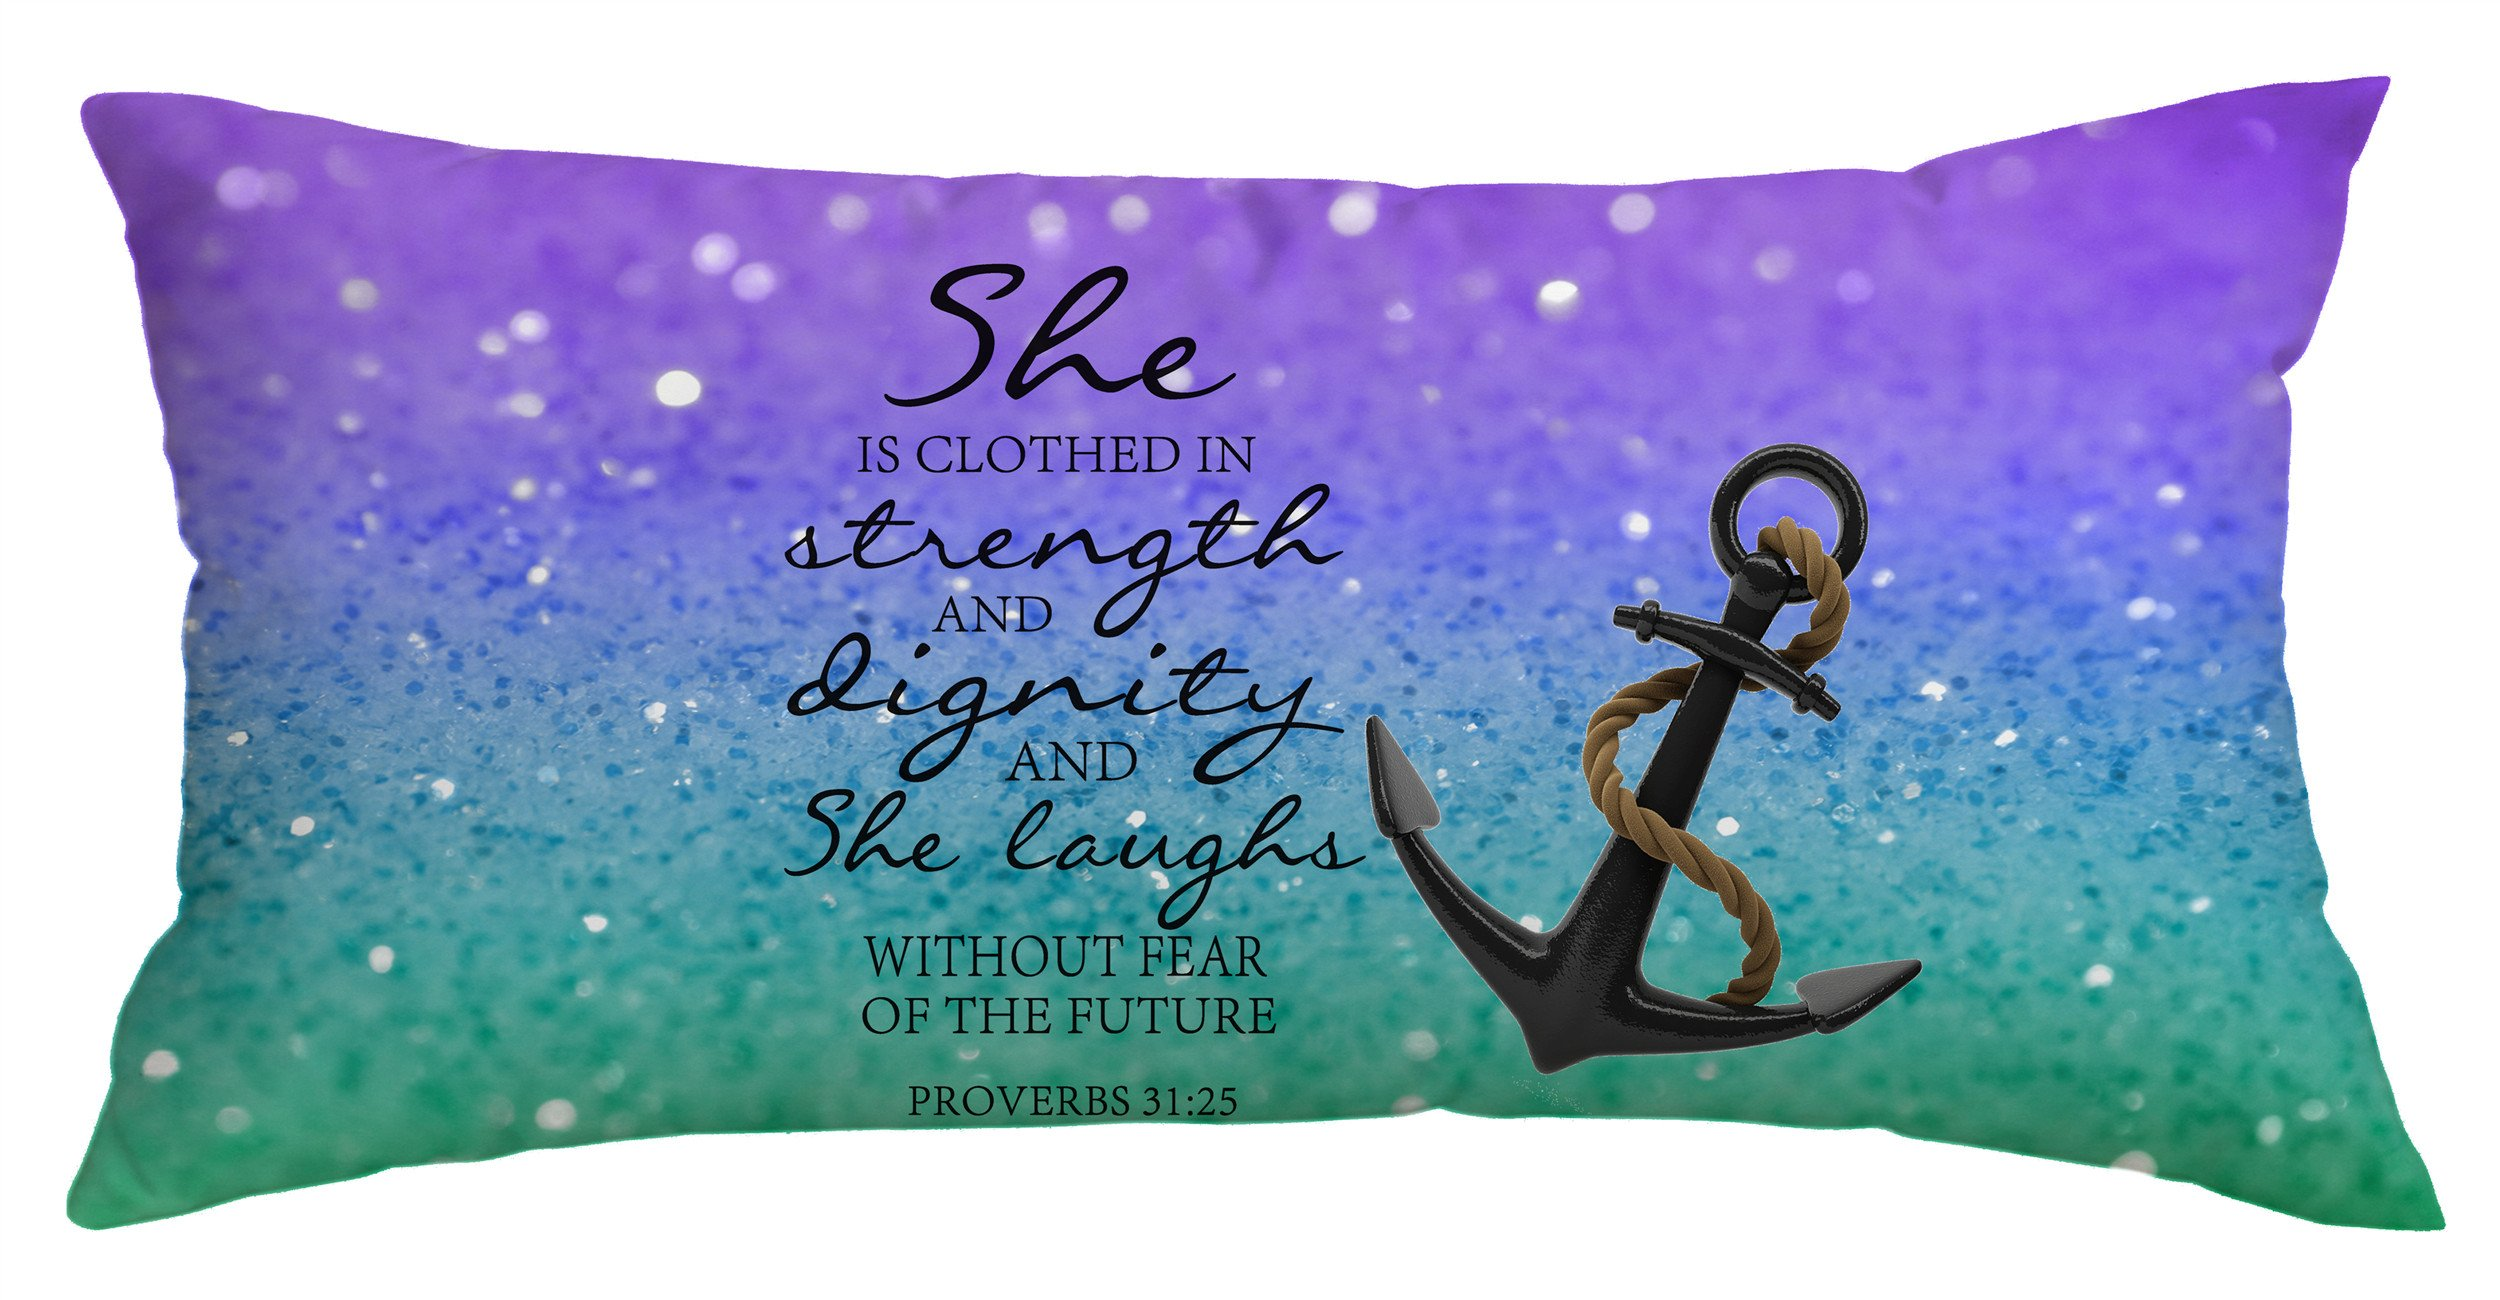 Christian Quotes Glitter Pillow Case Anchor Bible Verse proverbs 31:25 Polyester Decorative Throw Pillow Case Cushion Cover Body Pillow Covers 16 x 40 Inch